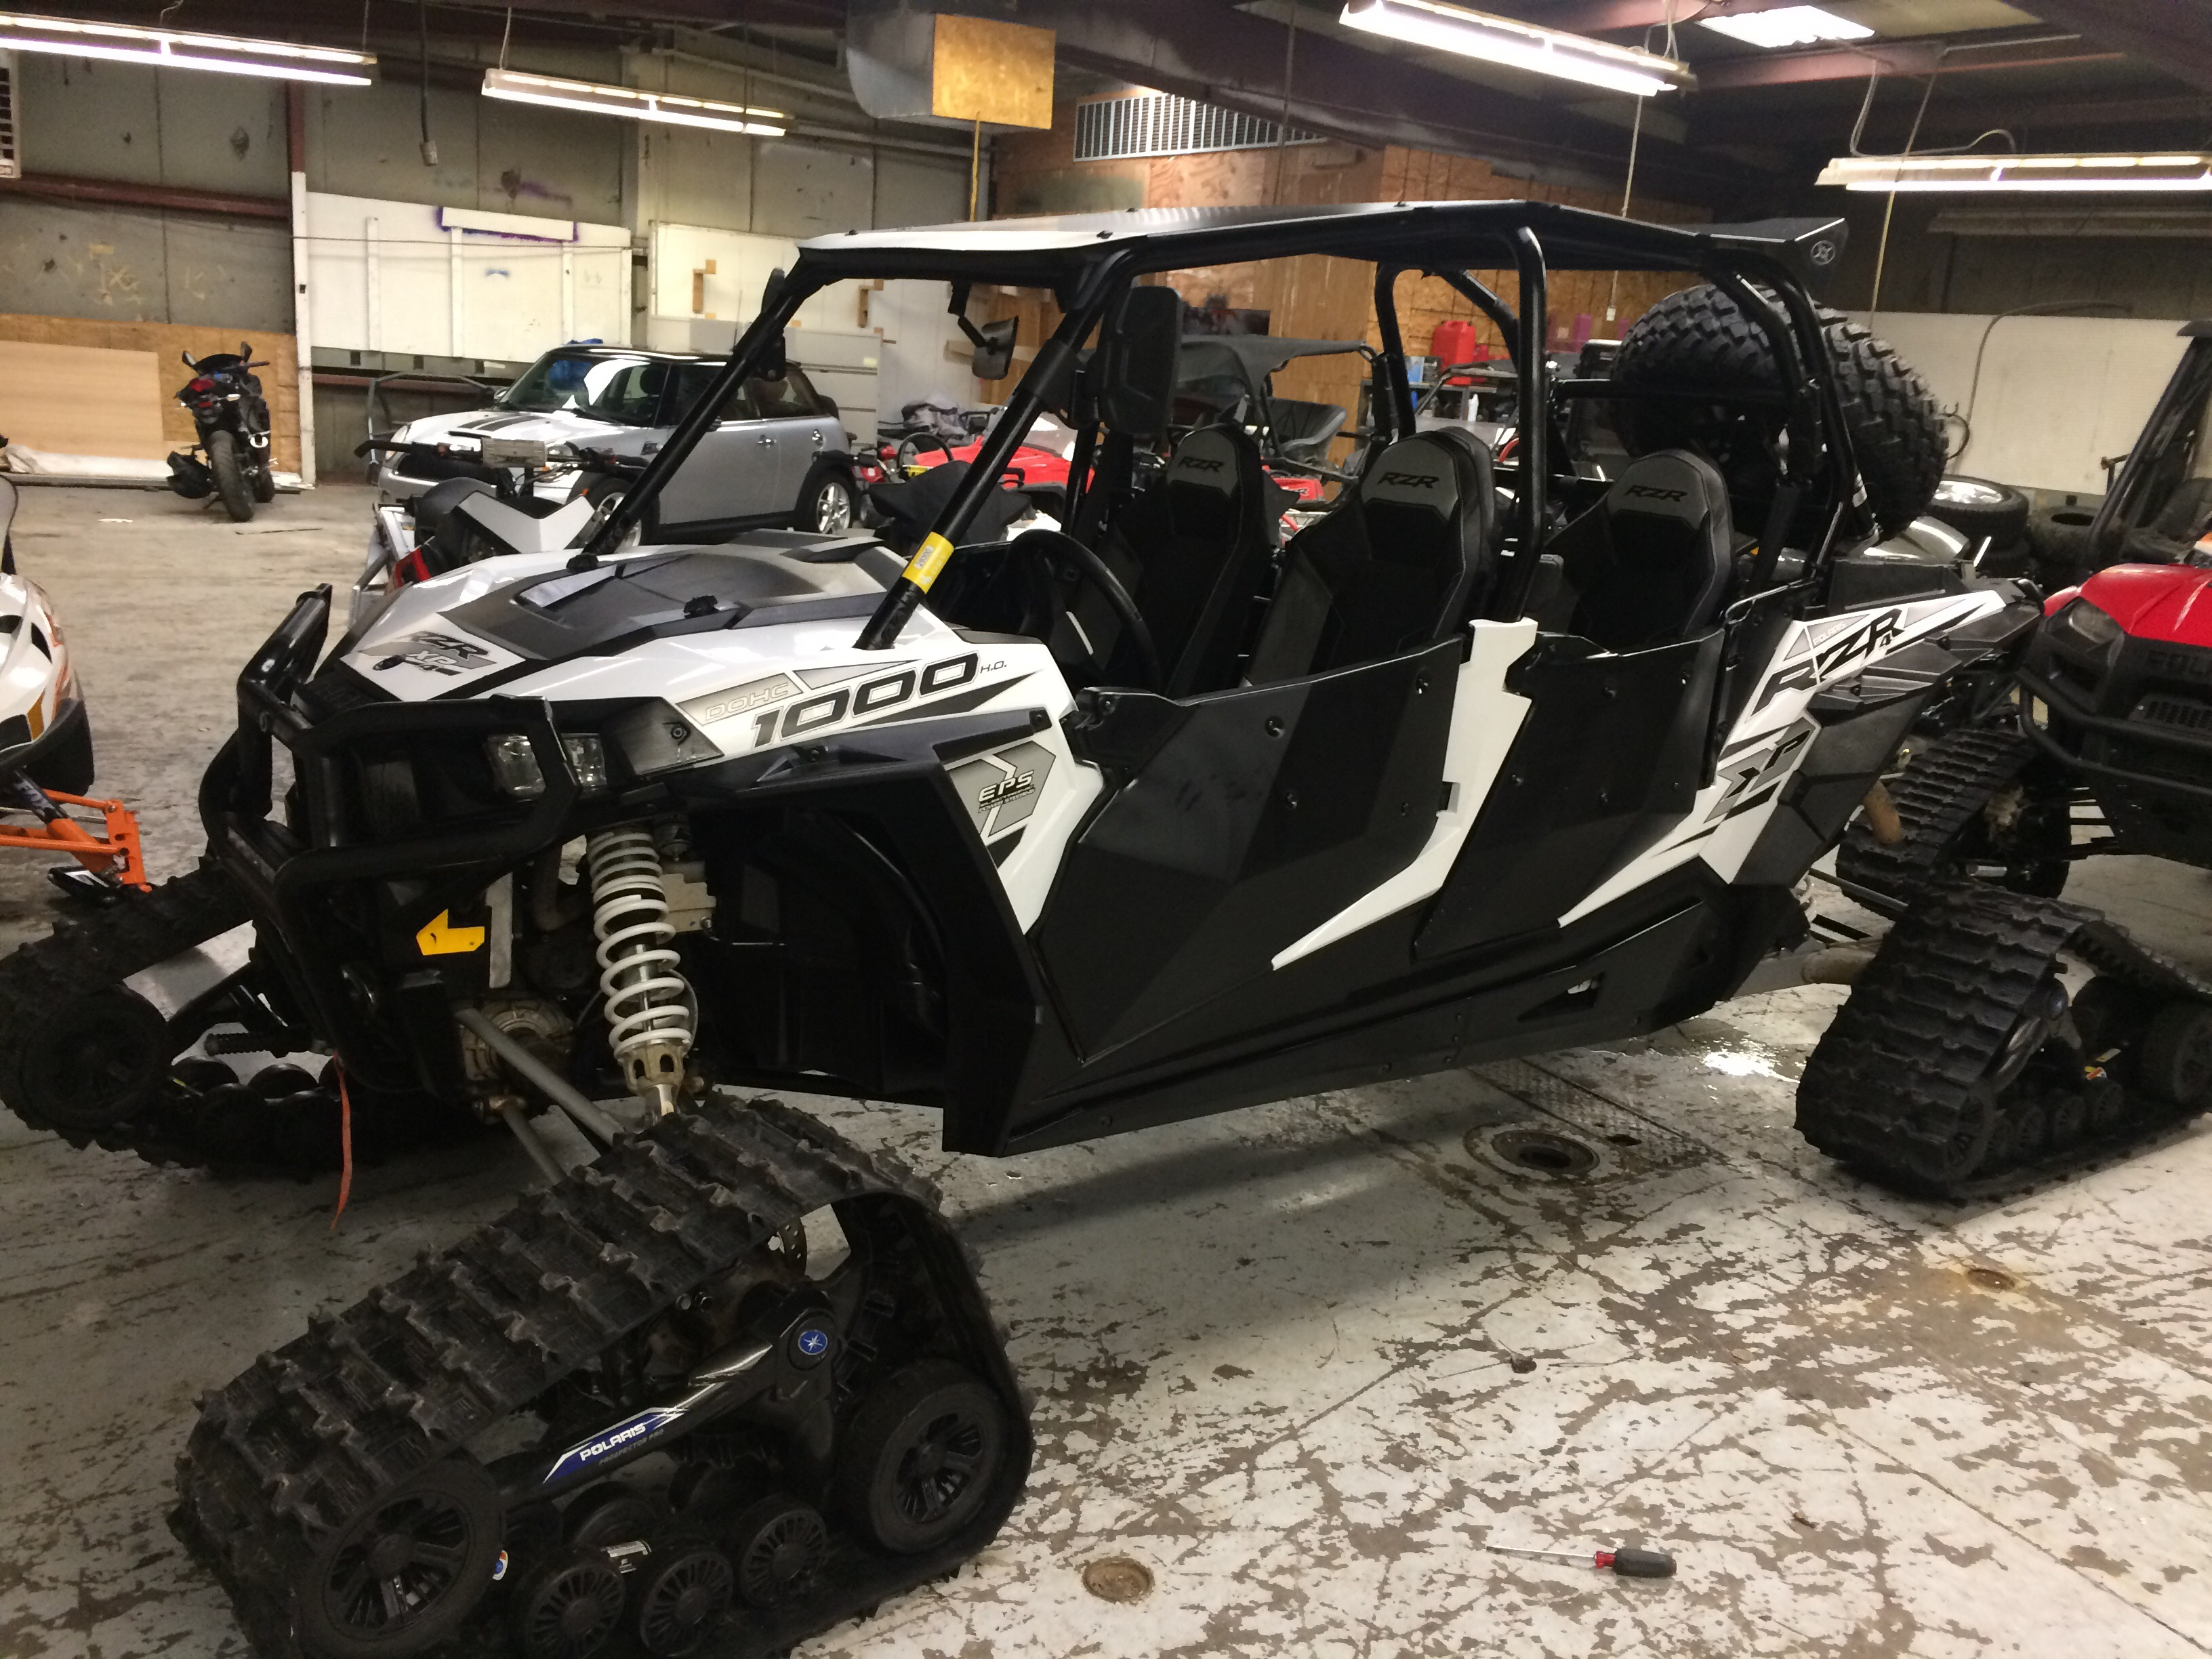 2015 Polaris Rzr 1000 XP With Tracks 2500 miles loaded  $21,000